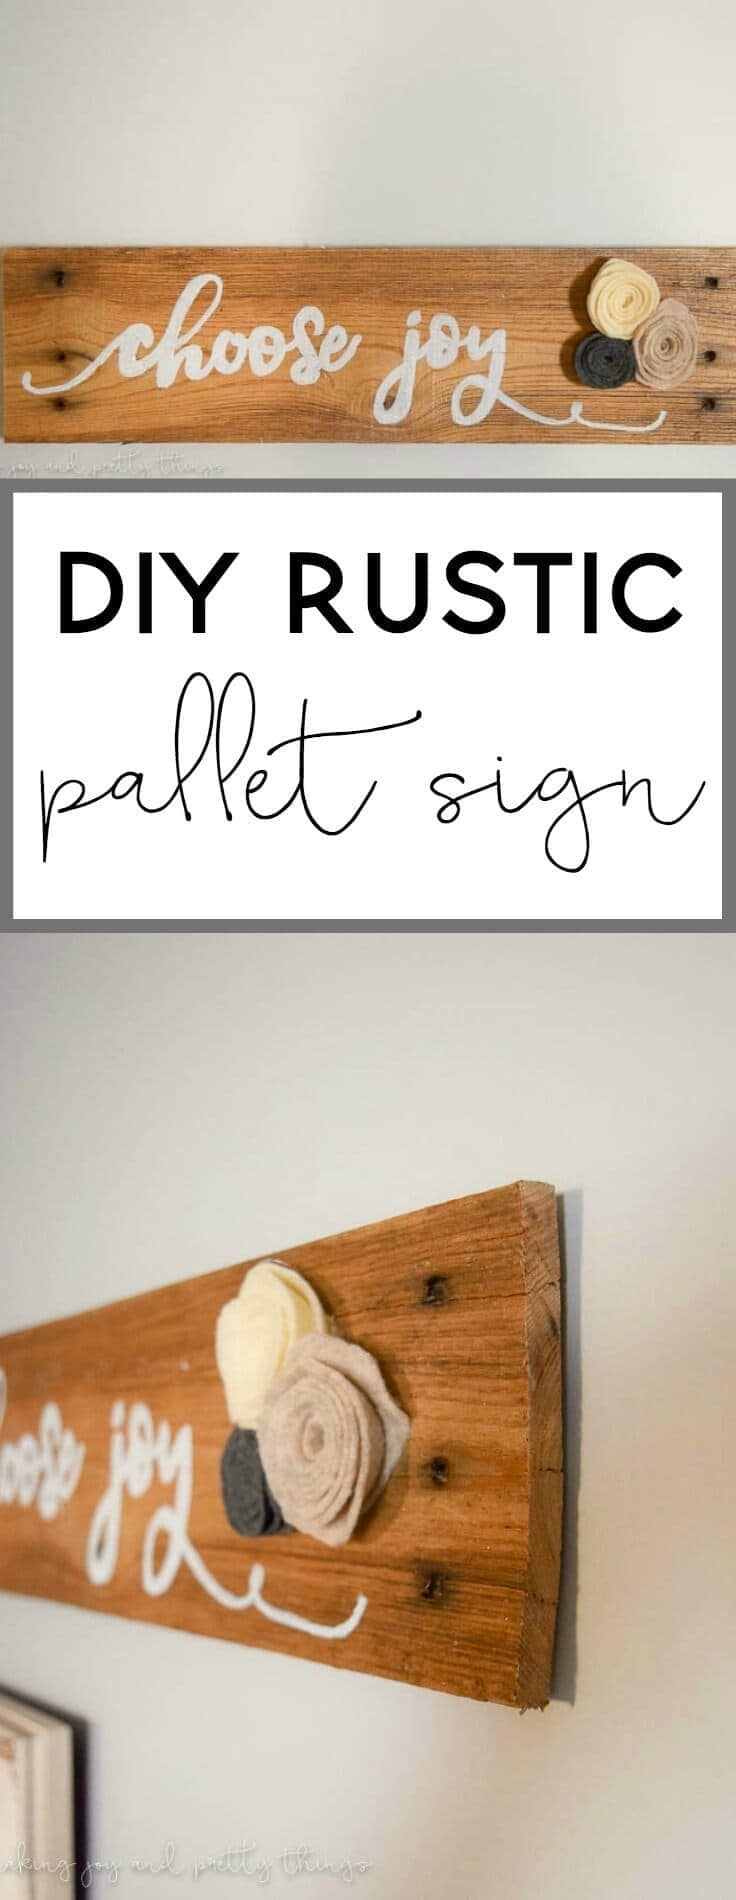 Diy Rustic Pallet Wood Sign Home Decor Tutorial